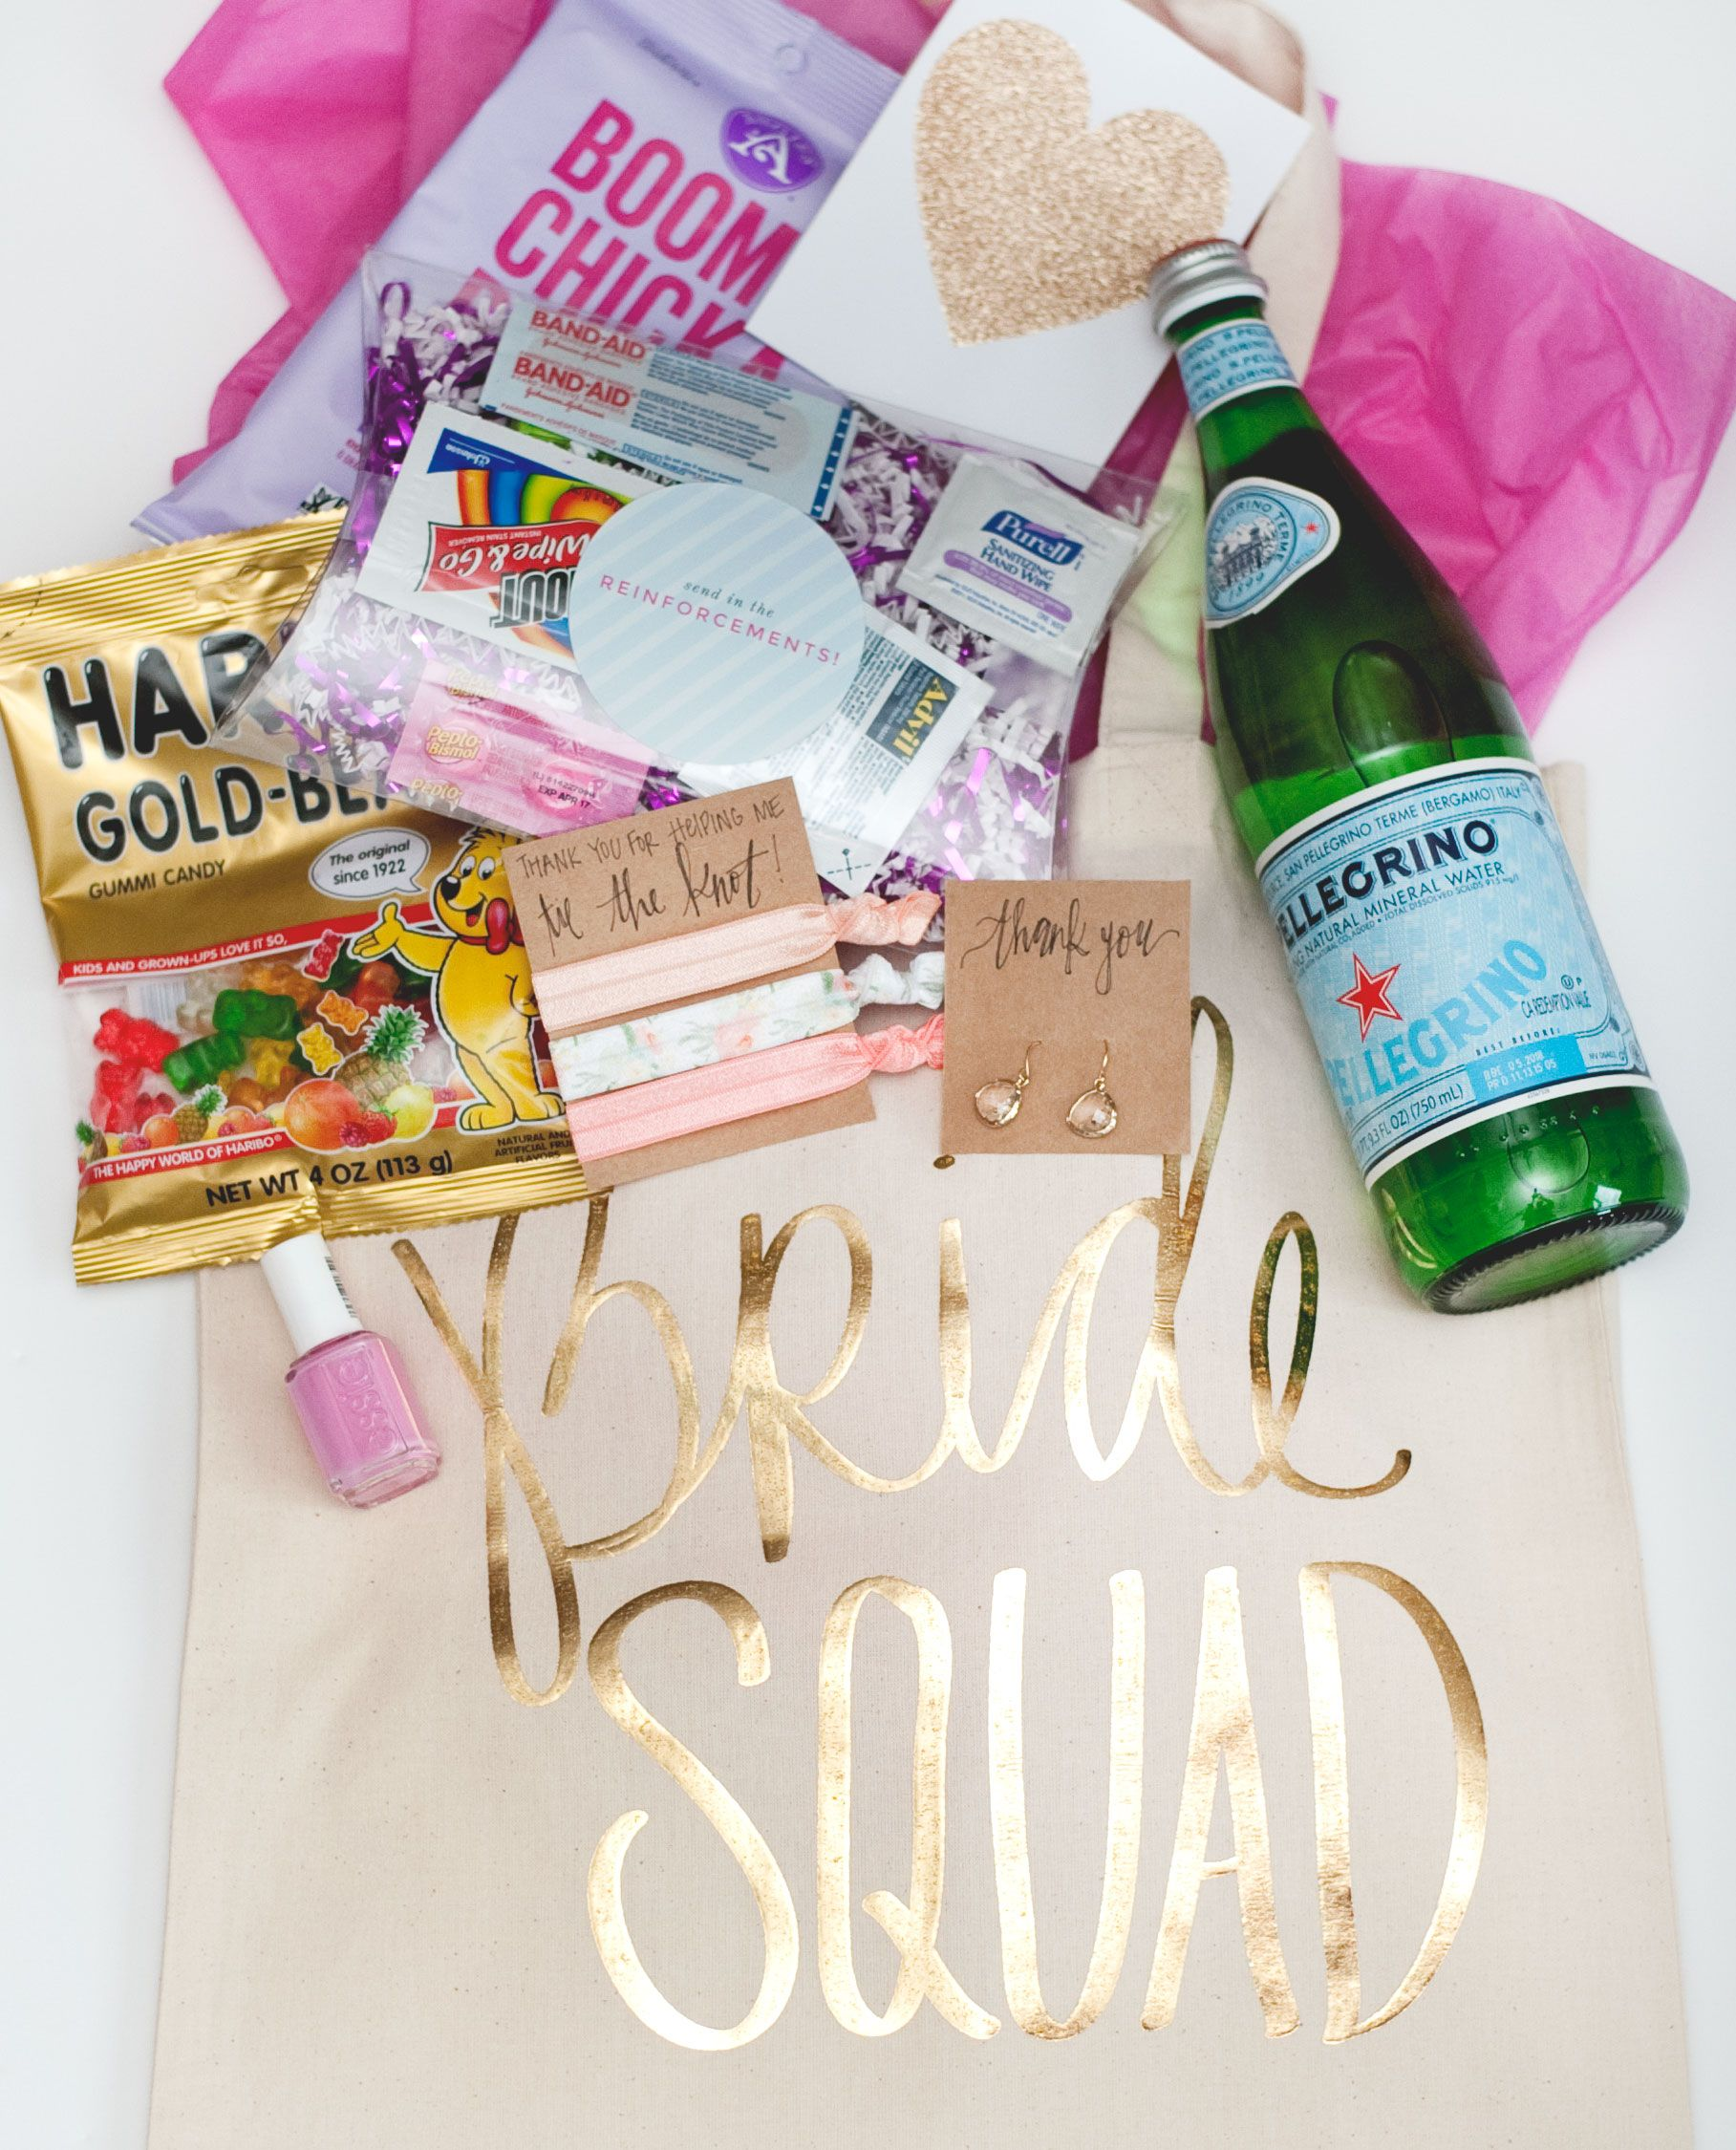 Wedding Party Gift Ideas For Bridesmaids: The Perfect Gifts For Your Bridesmaids, Including The Gold